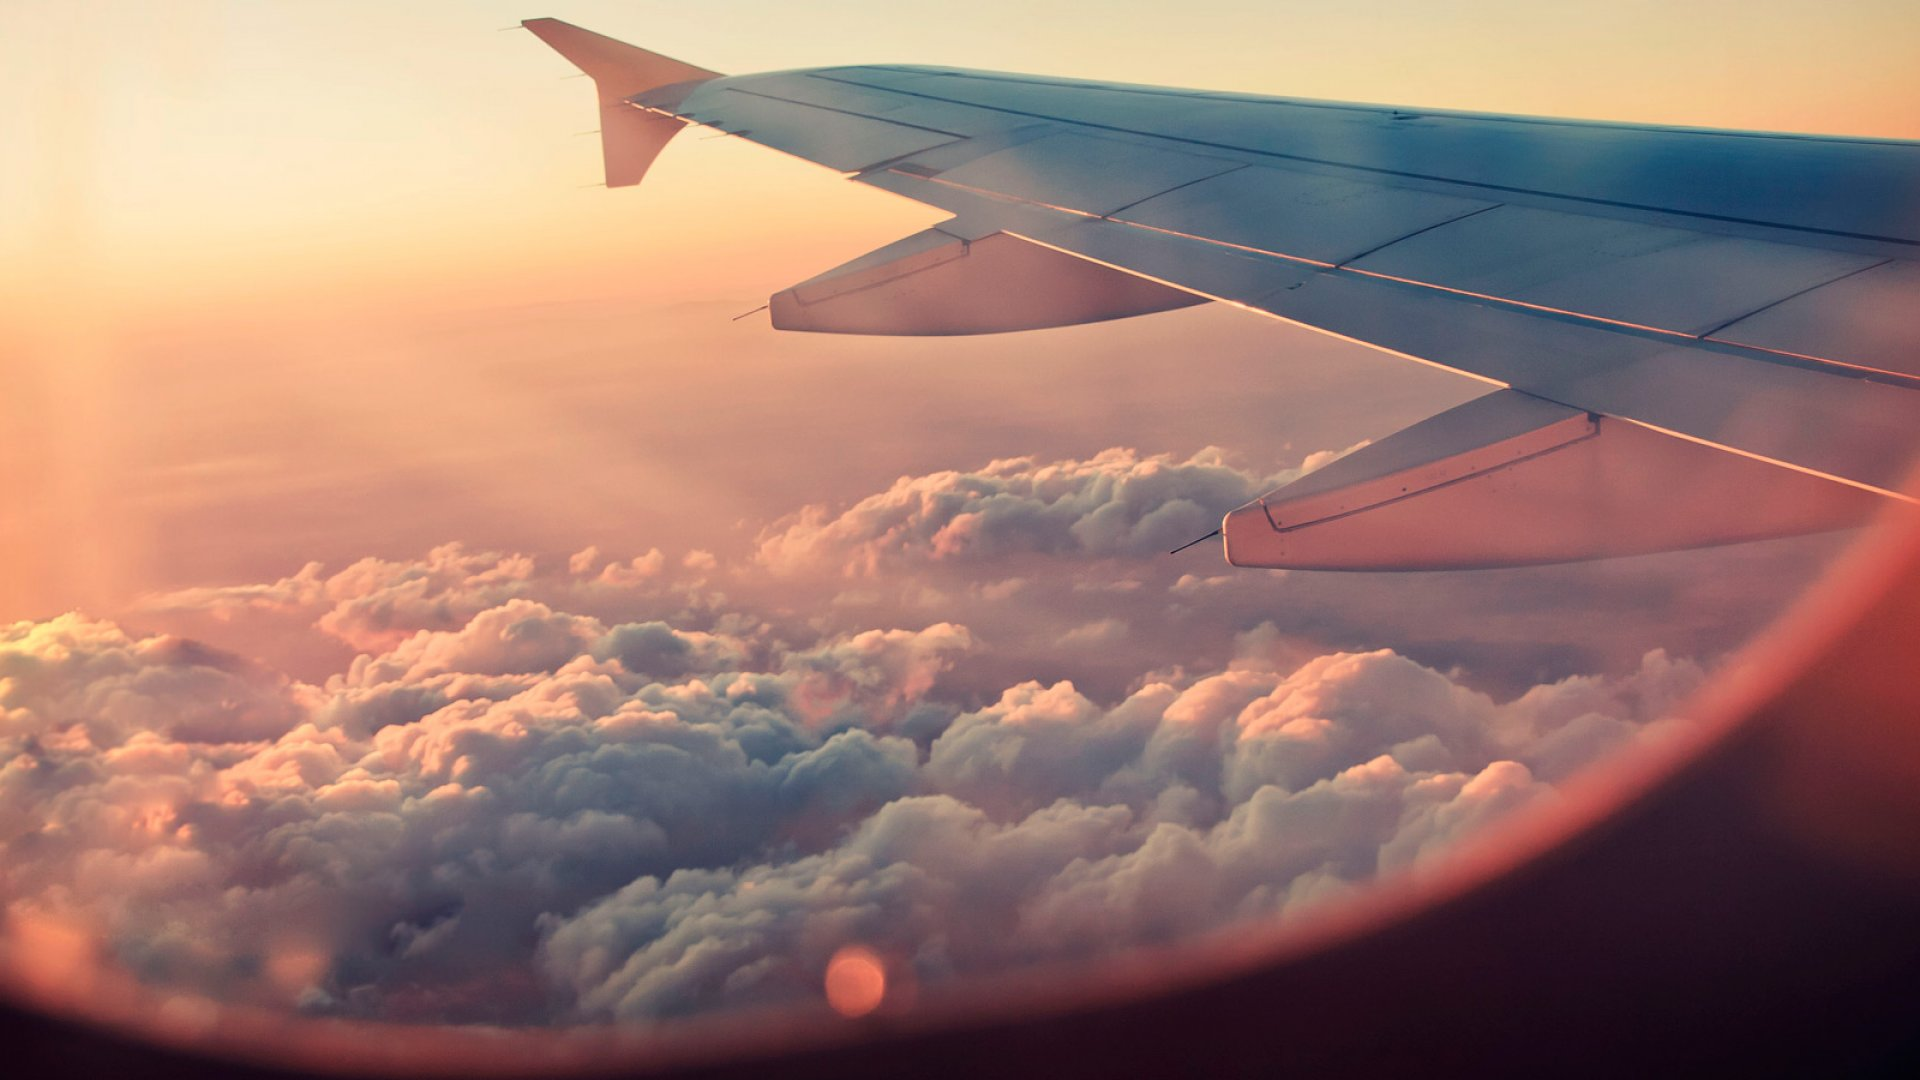 Business Travel Spending Expected to Increase in 2015